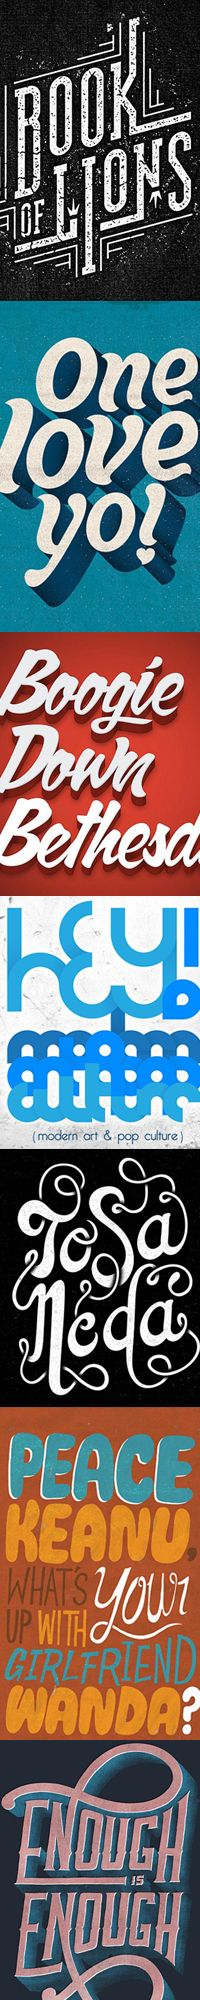 http://graphicdesignjunction.com/2013/01/28-remarkable-examples-of-typogaphy-design/